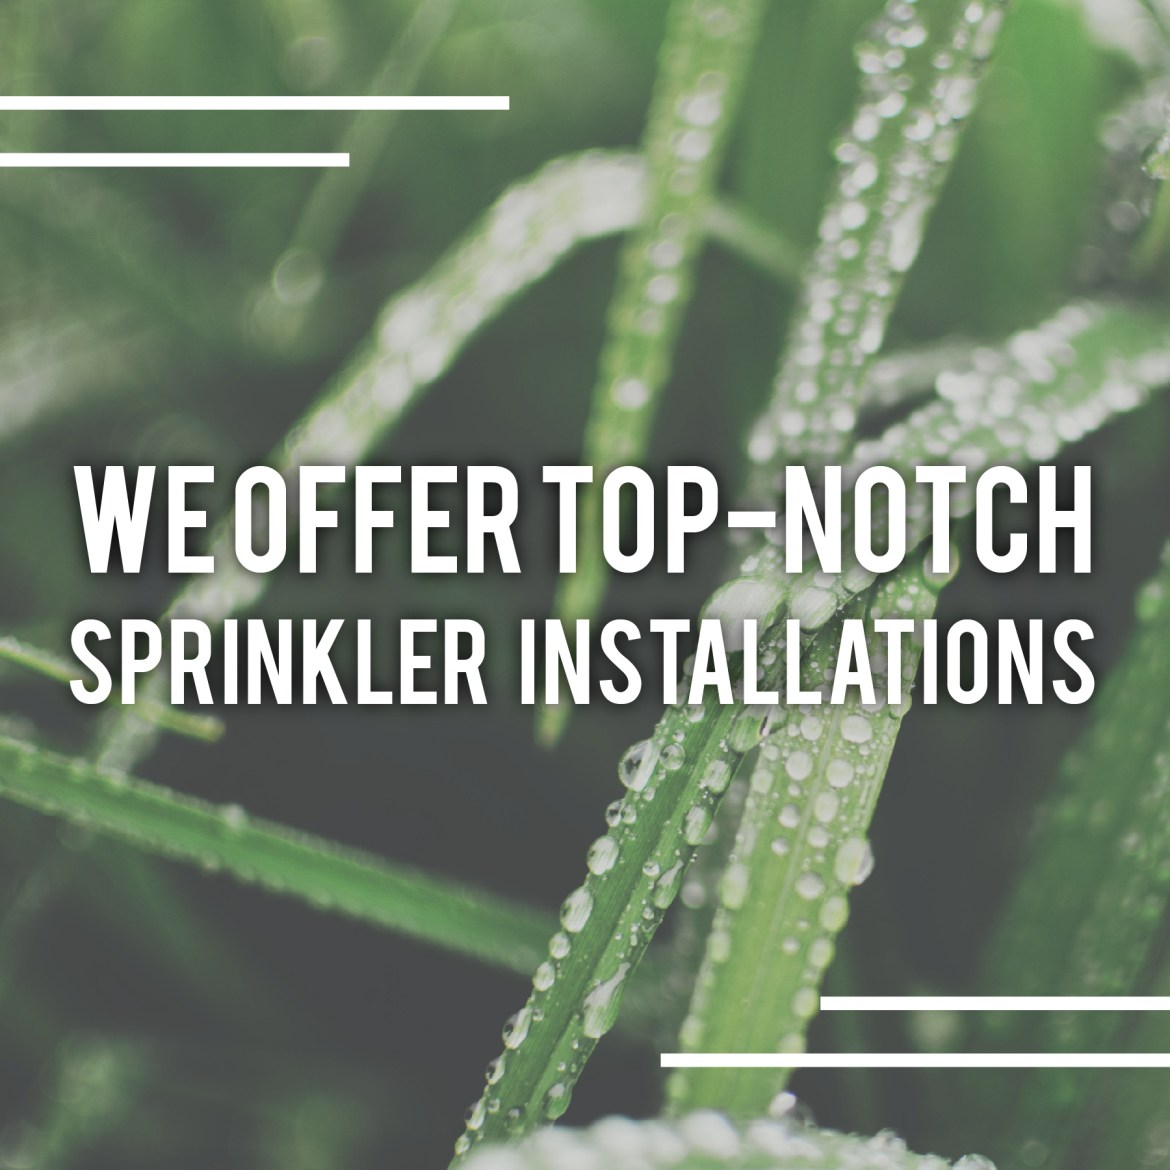 Contact us to get an estimate for a free sprinkler installation